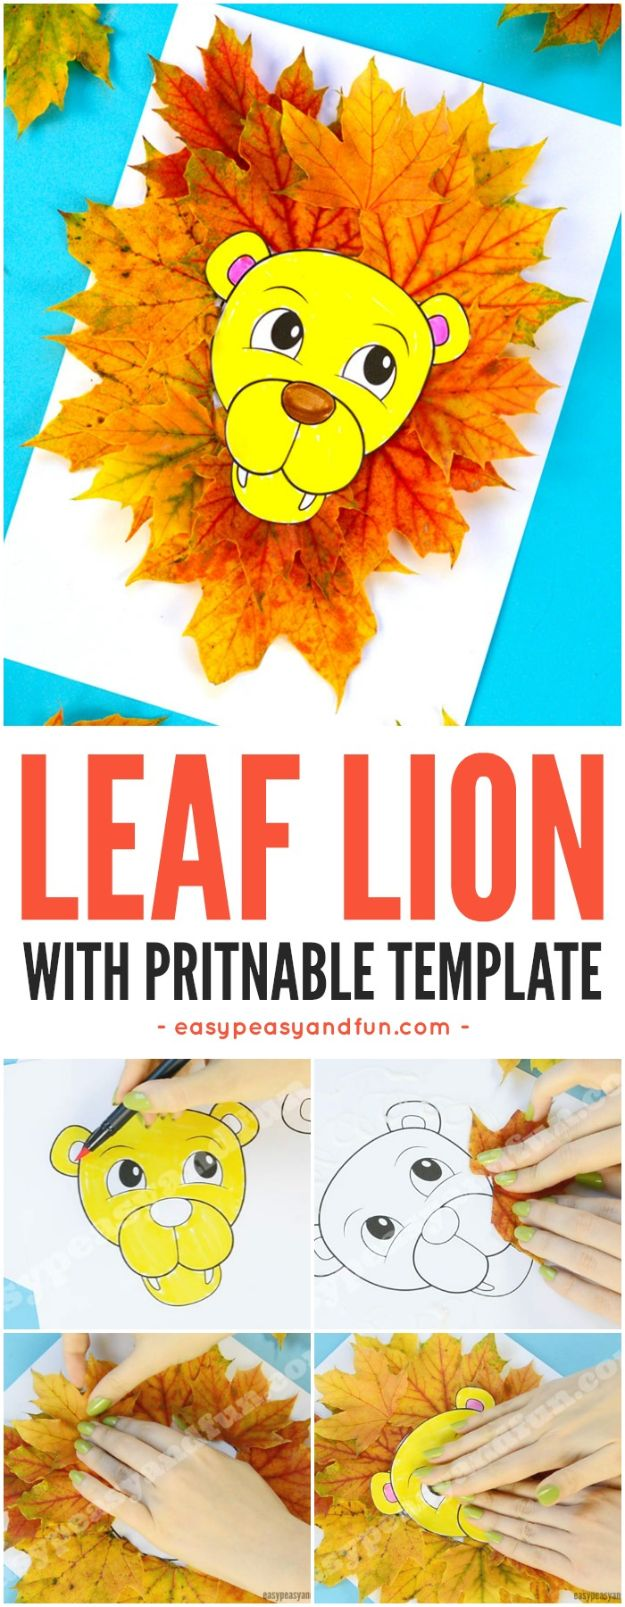 Fun Fall Crafts for Kids - Lion Leaf Craft - Cool Crafts Ideas for Kids to Make With Paper, Glue, Leaves, Corn Husk, Pumpkin and Glitter - Halloween and Thanksgiving - Children Love Making Art, Paintings, Cards and Fall Decor - Placemats, Place Cards, Wall Art , Party Food and Decorations for Toddlers, Boys and Girls #fallcrafts #kidscrafts #kids